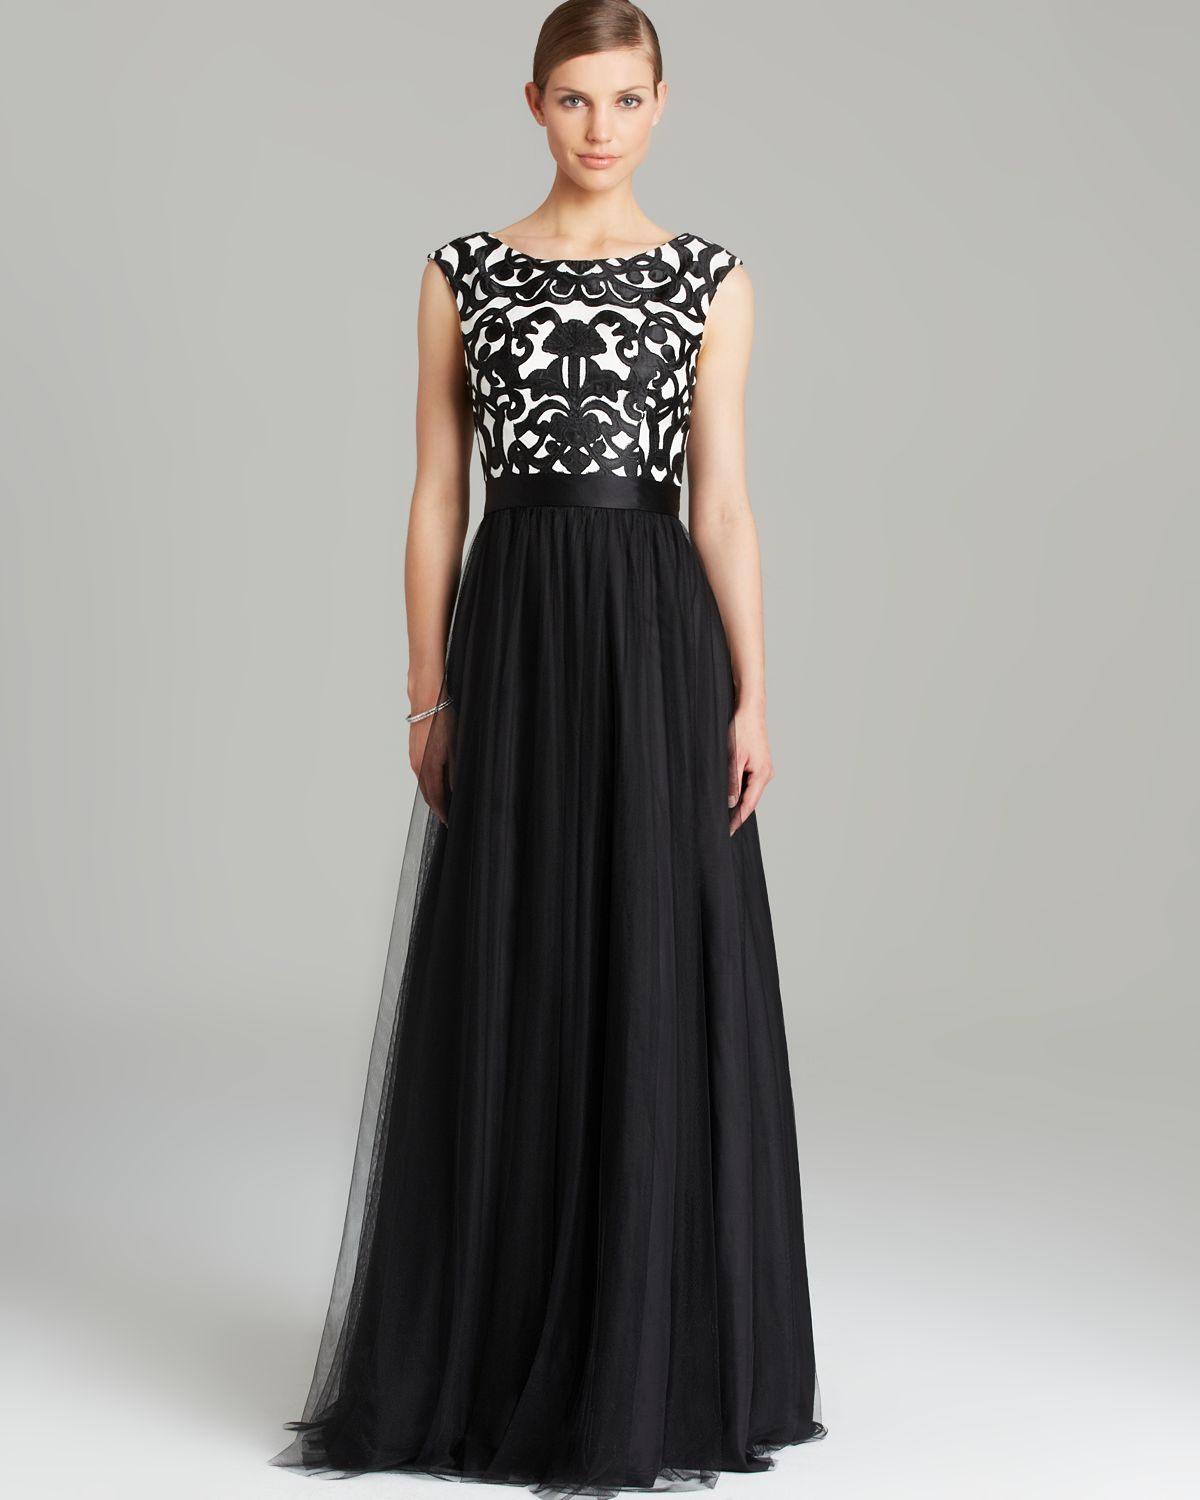 Gowns For Women: Cap Sleeve Printed Tulle Skirt In